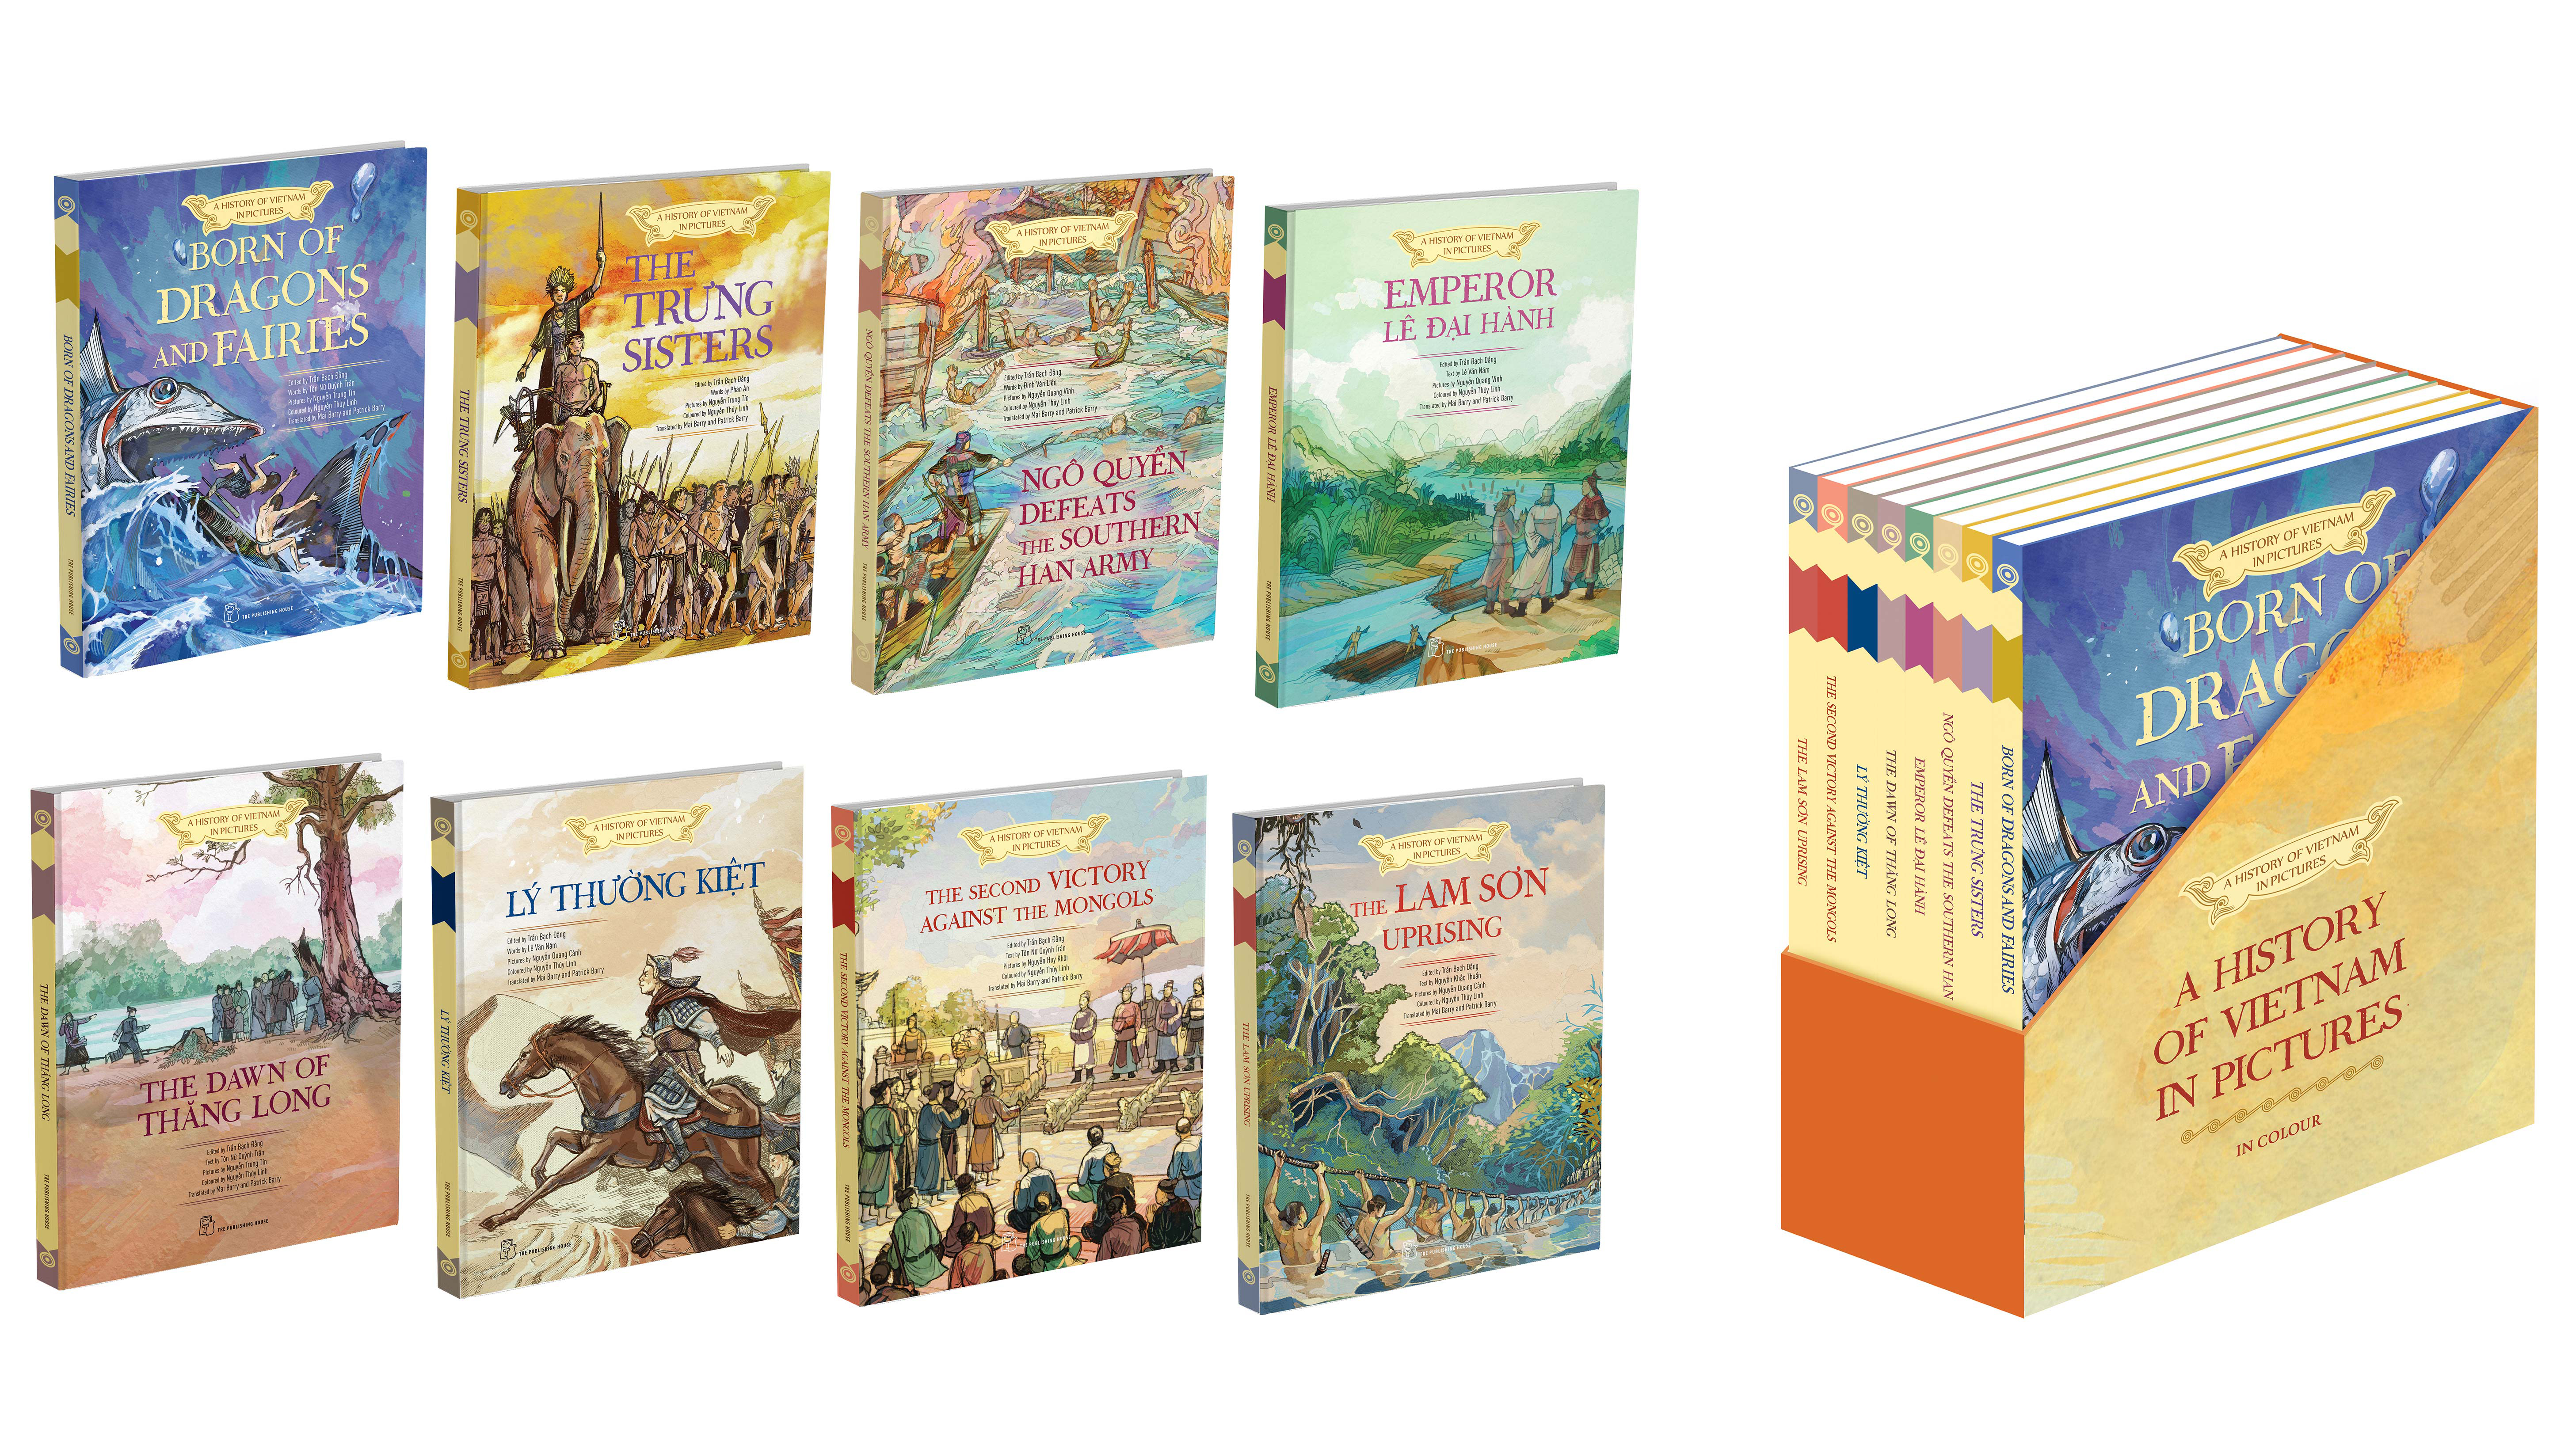 Publisher releases picture books on Vietnamese history in English